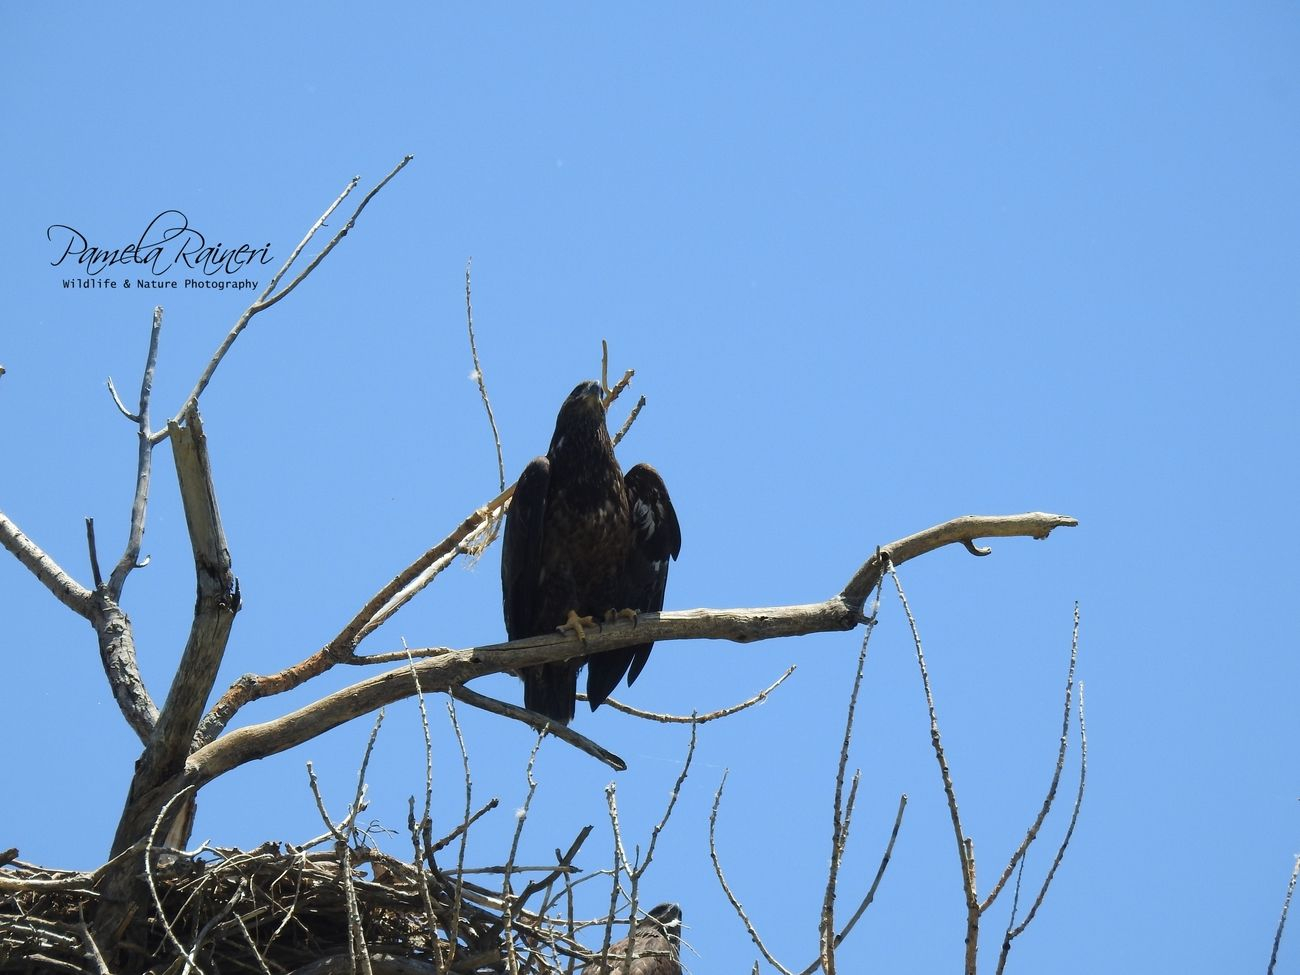 I have been watching a nest for awhile, there are 3 juveniles, 1 has fledged.  I was hoping this one was going to fledge when I was watching it, but no such luck.  Located near the Republican River in Scandia, Ks.